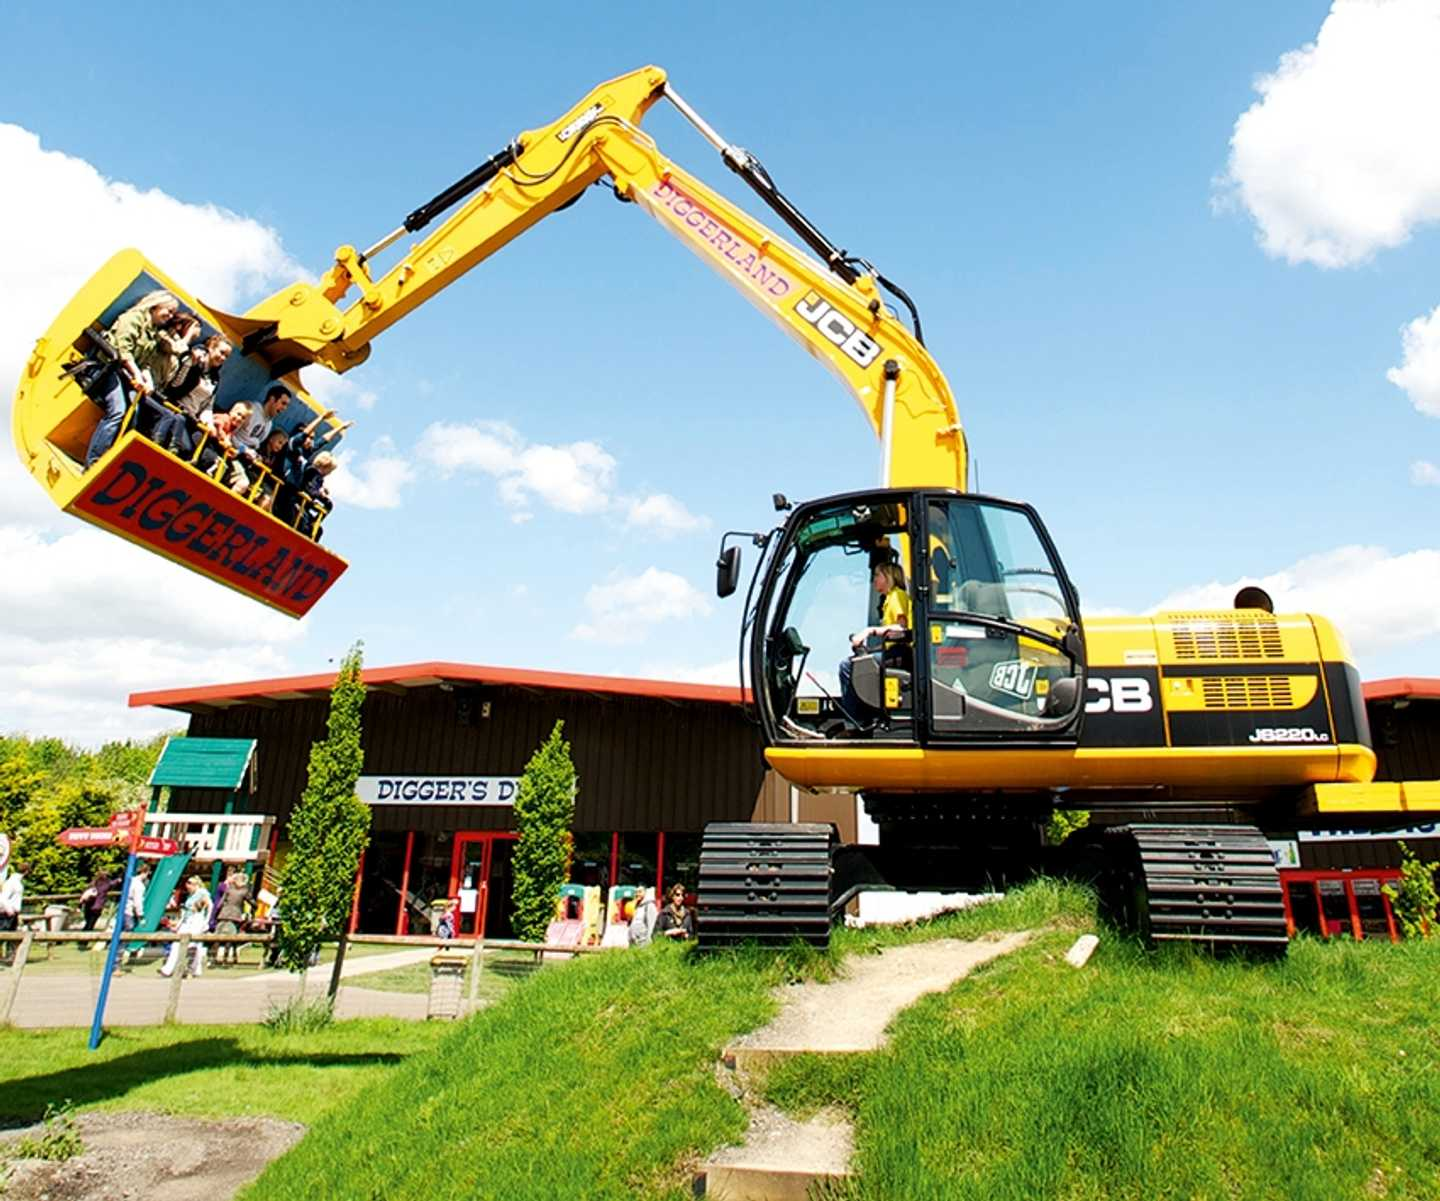 The spindizzy ride at Diggerland